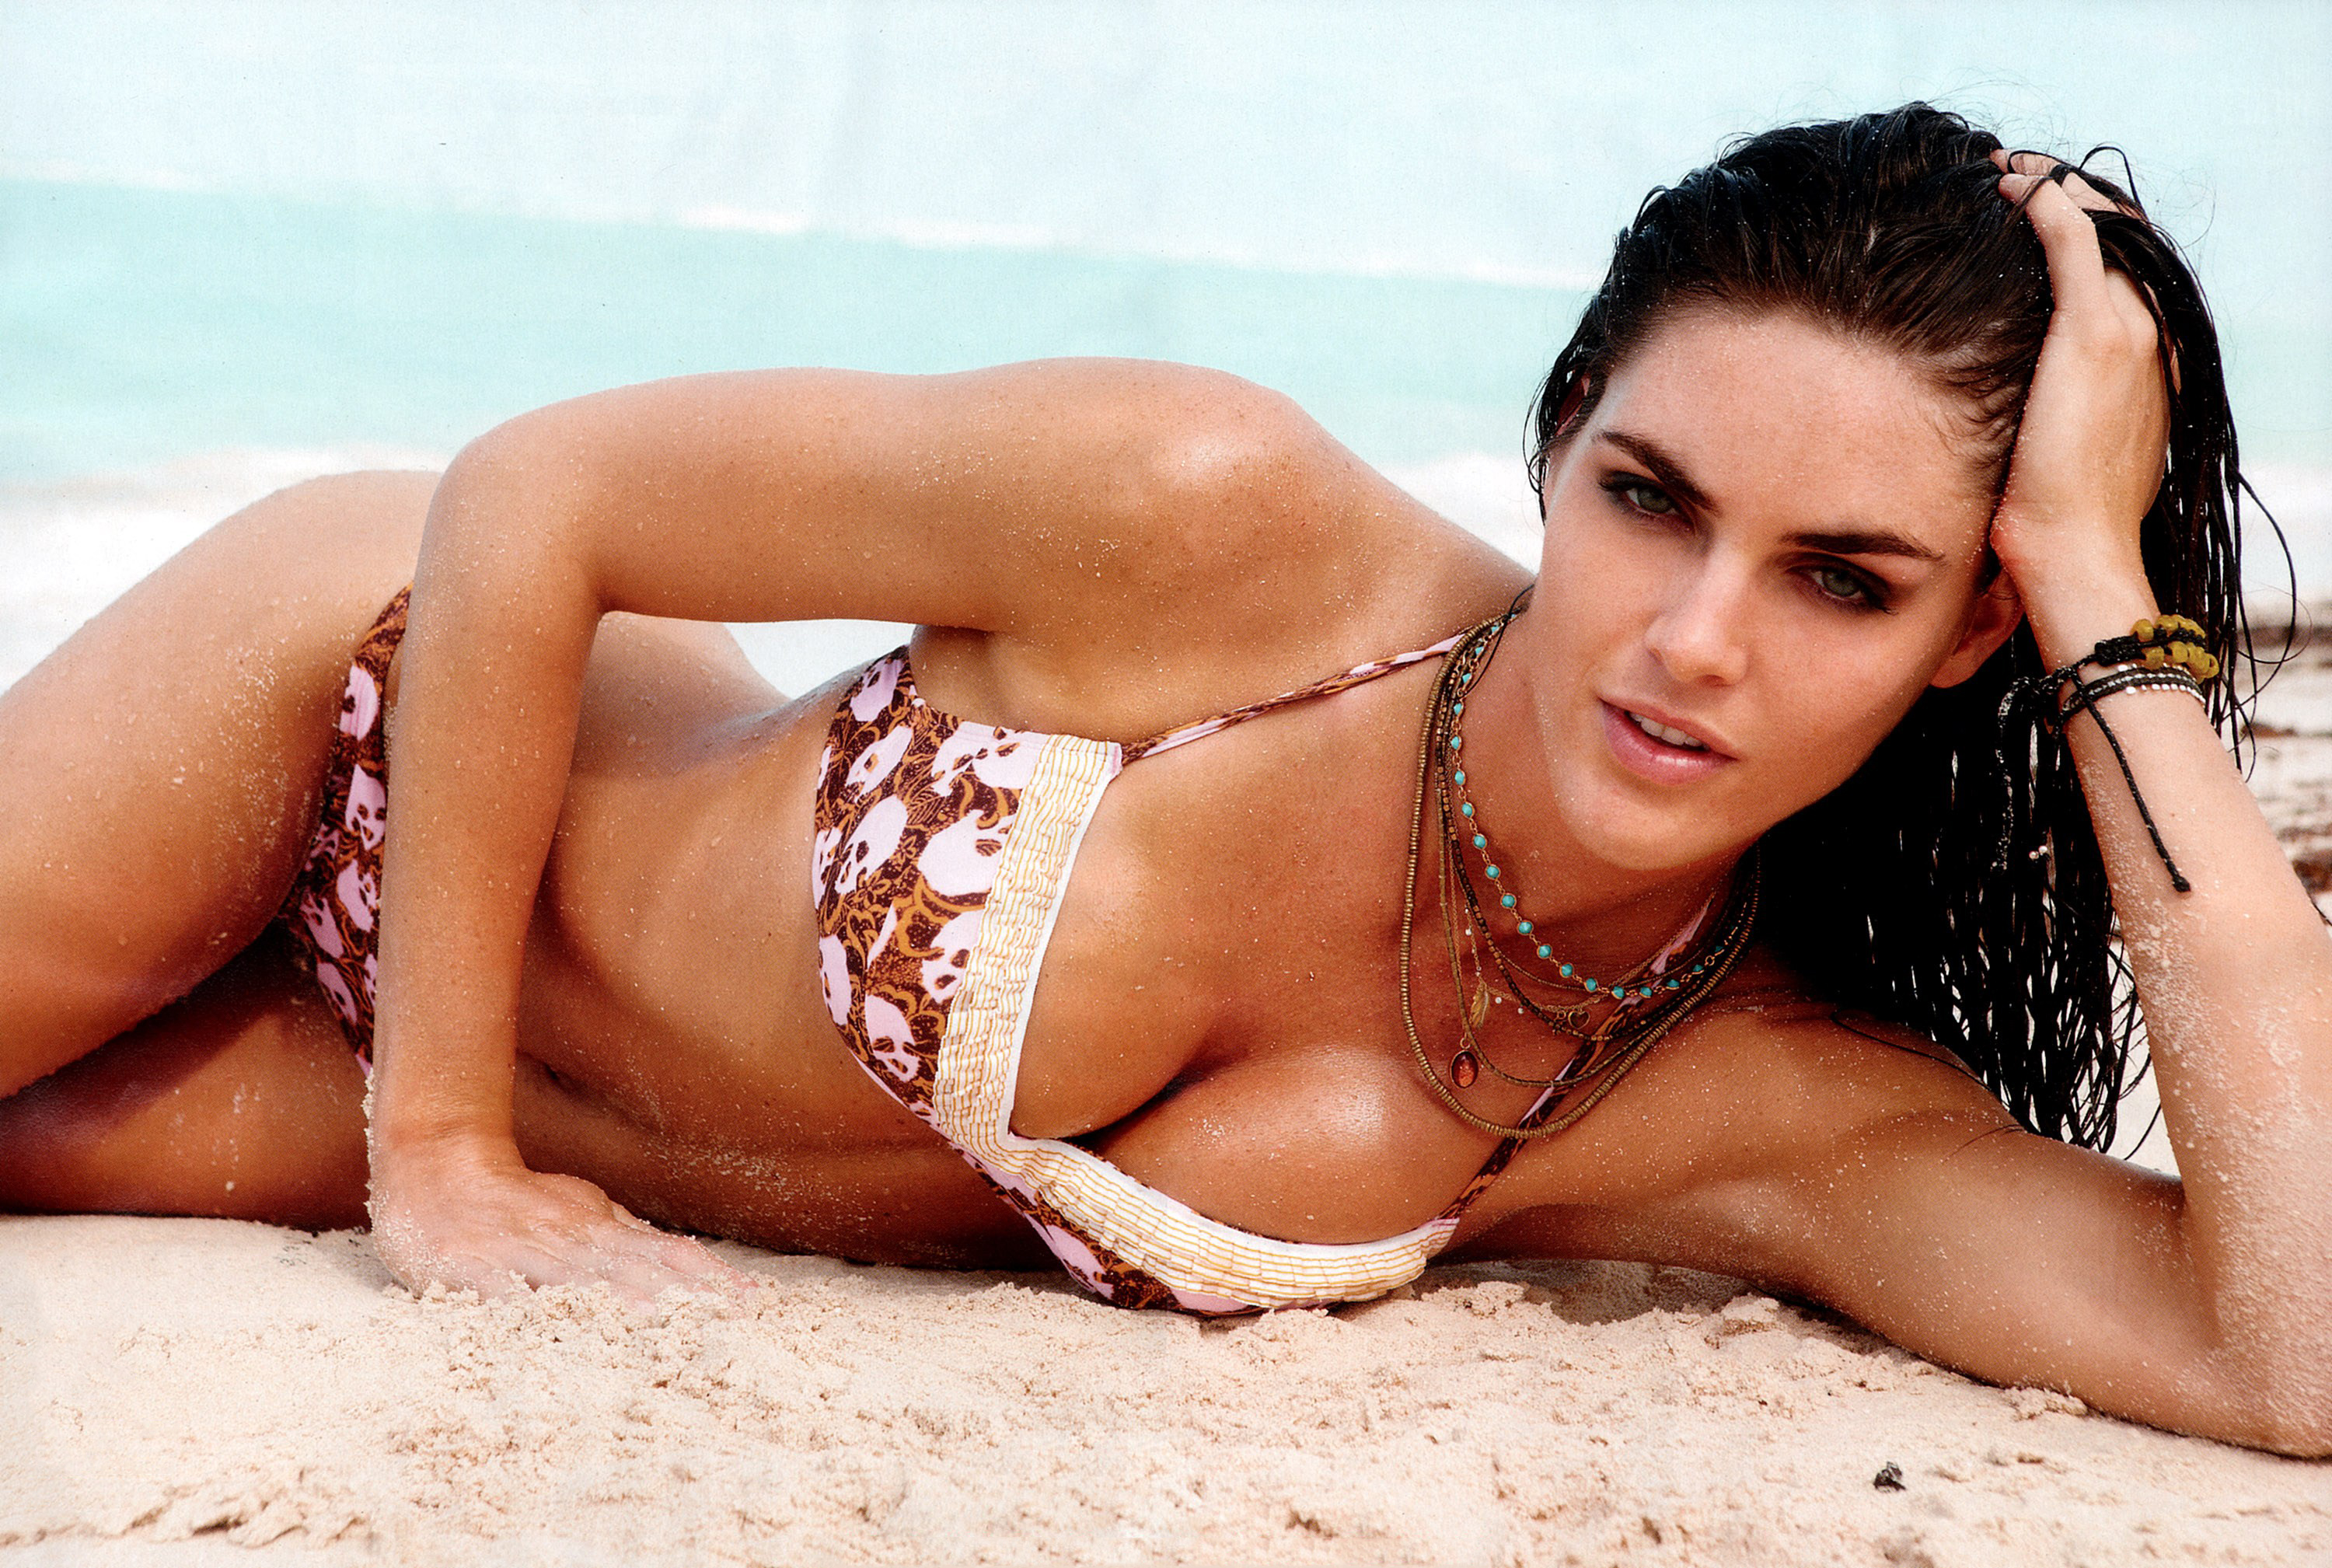 hilary rhoda video